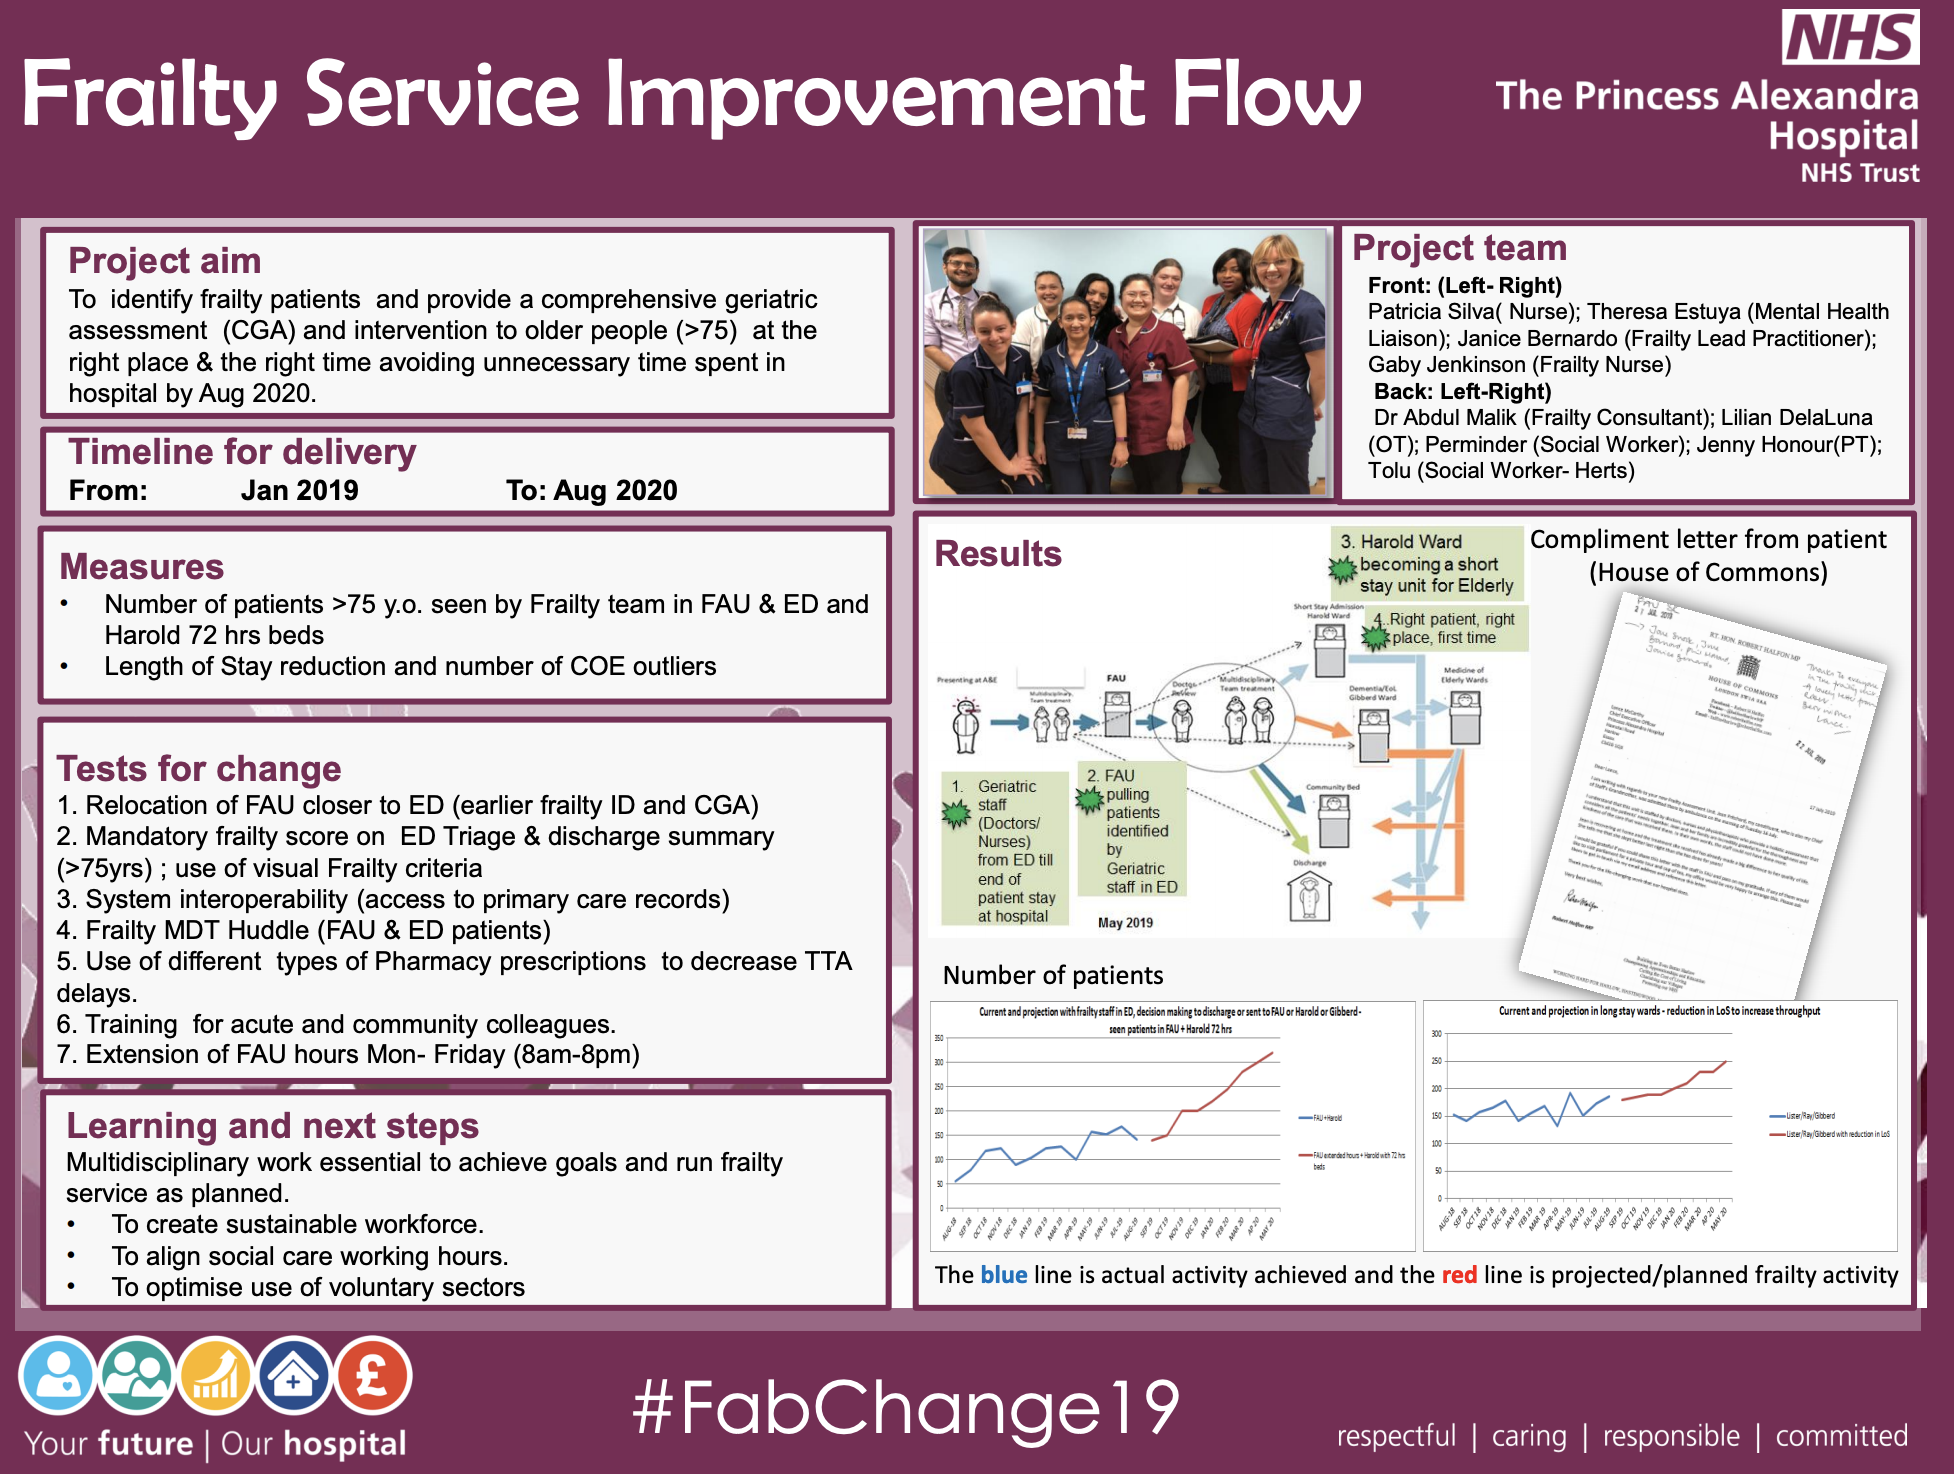 PAHT - Frality Service Improvement Flow - @QualityFirstPAH featured image